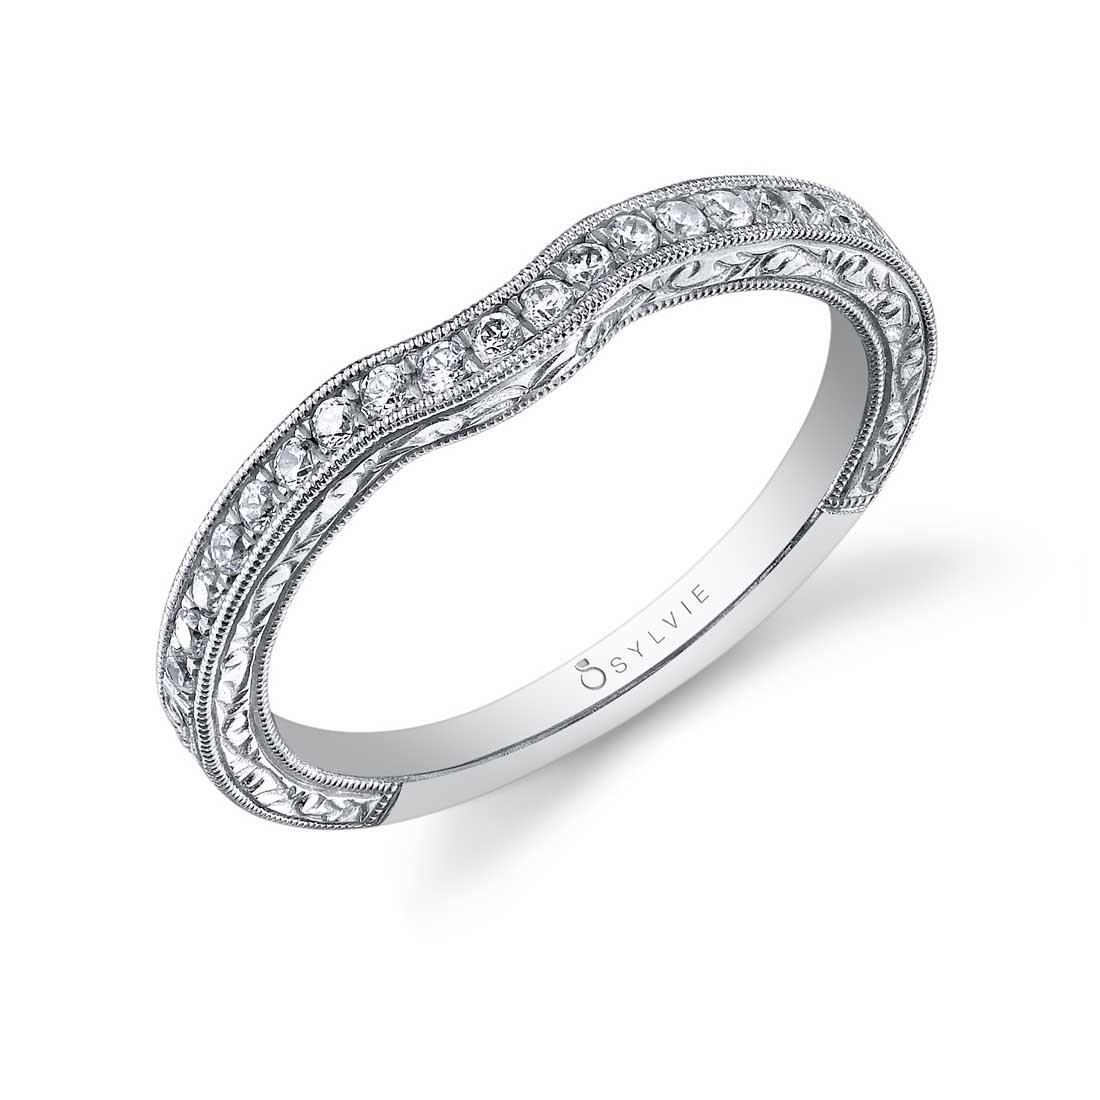 Profile Image of a Round Hand Engraved Engagement Ring